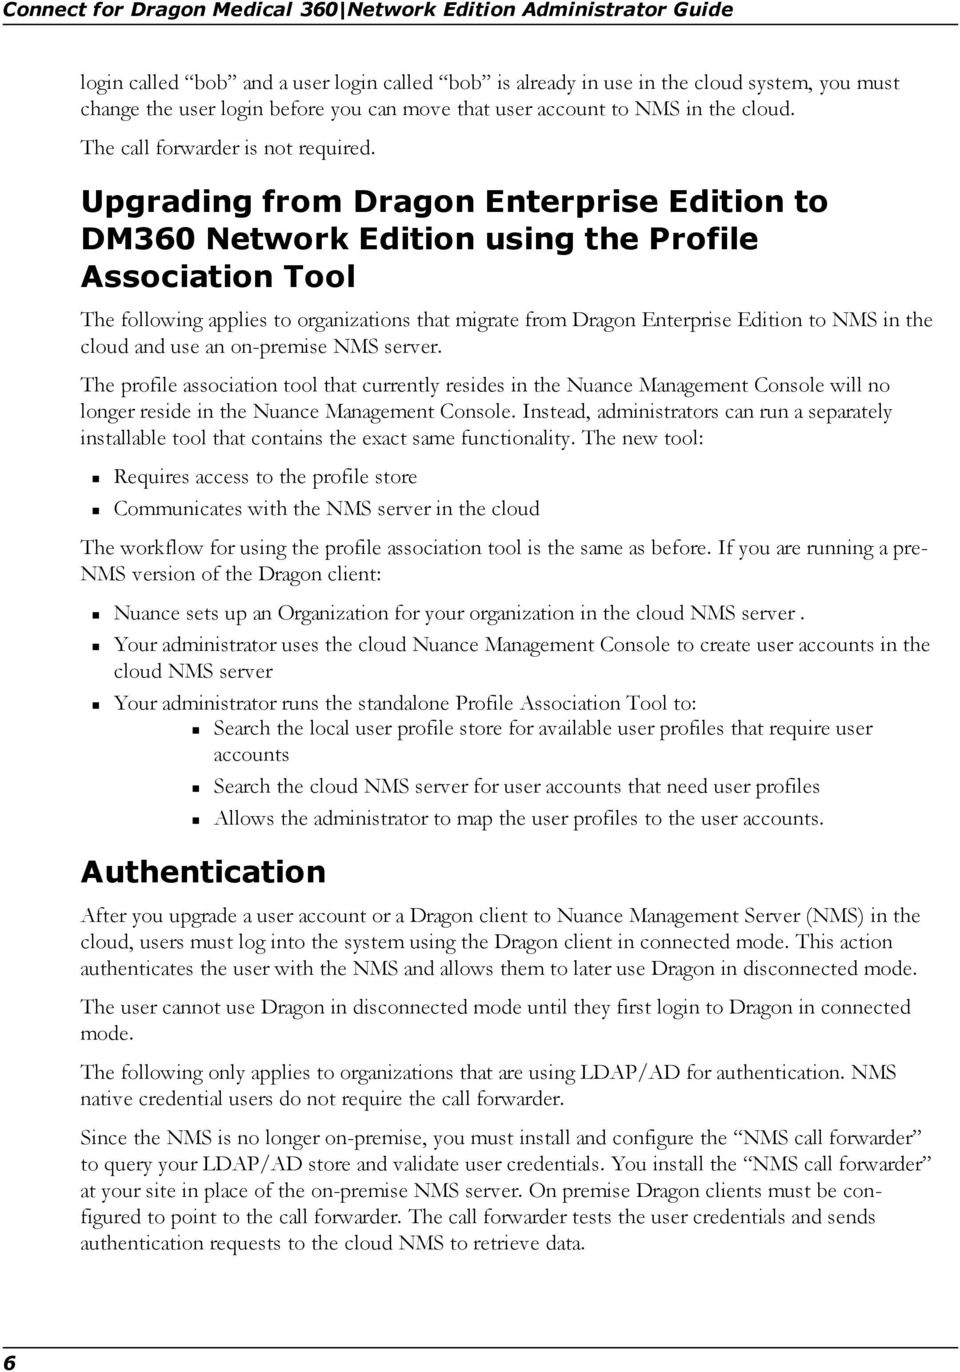 Upgrading from Dragon Enterprise Edition to DM360 Network Edition using the Profile Association Tool The following applies to organizations that migrate from Dragon Enterprise Edition to NMS in the